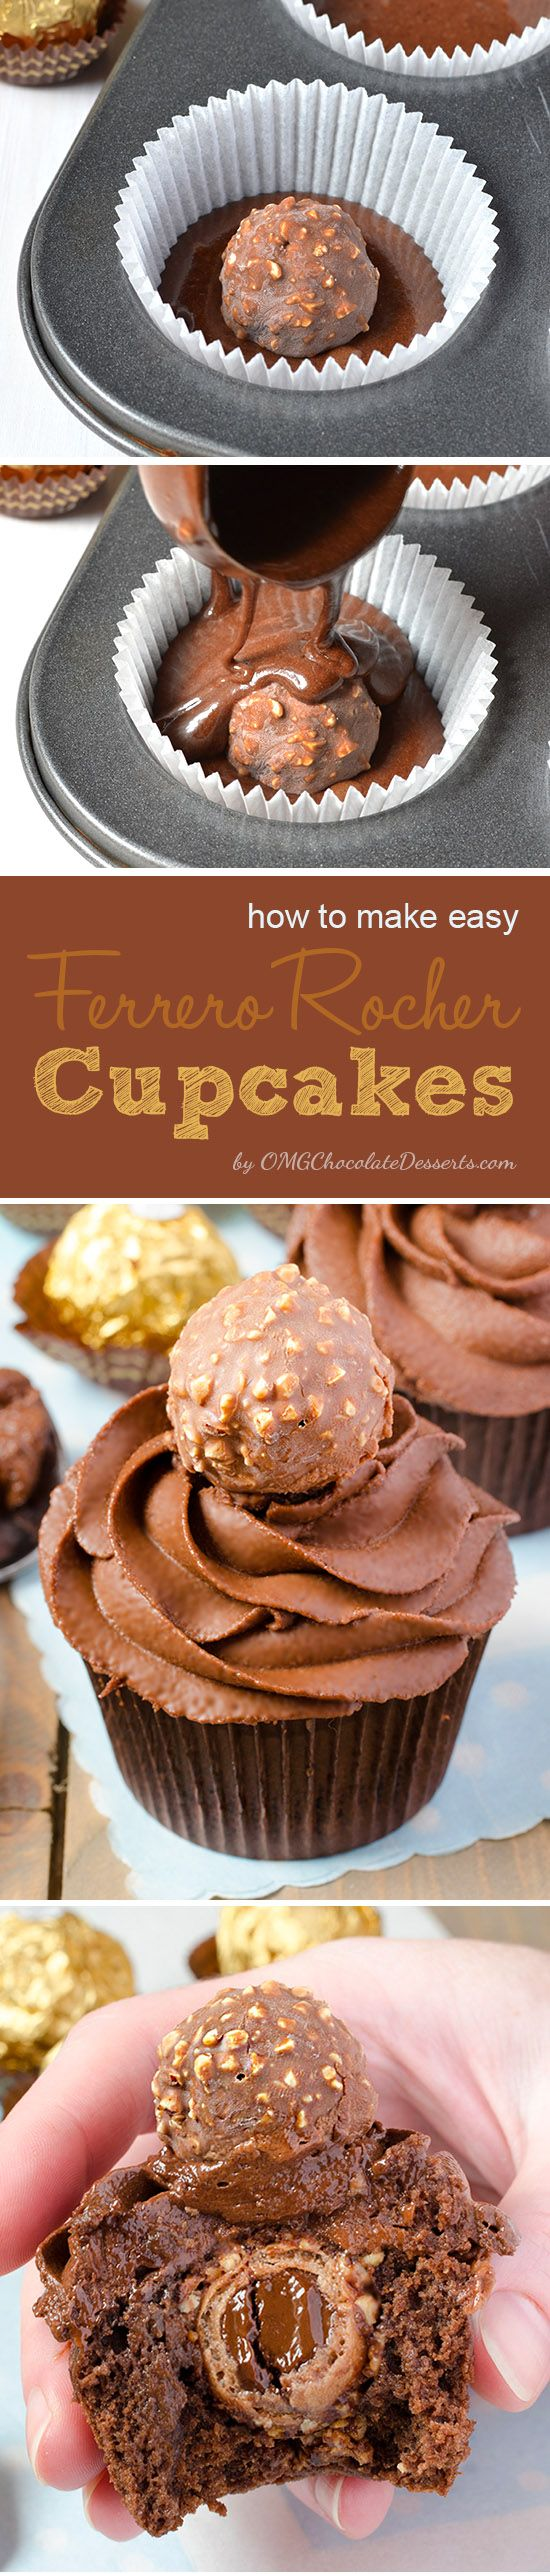 Ferrero Rocher Cupcakes - this is my favorite candy and so I can't wait to try these! #cupcakes #cupcakeideas #cupcakerecipes #food #yummy #sweet #delicious #cupcake